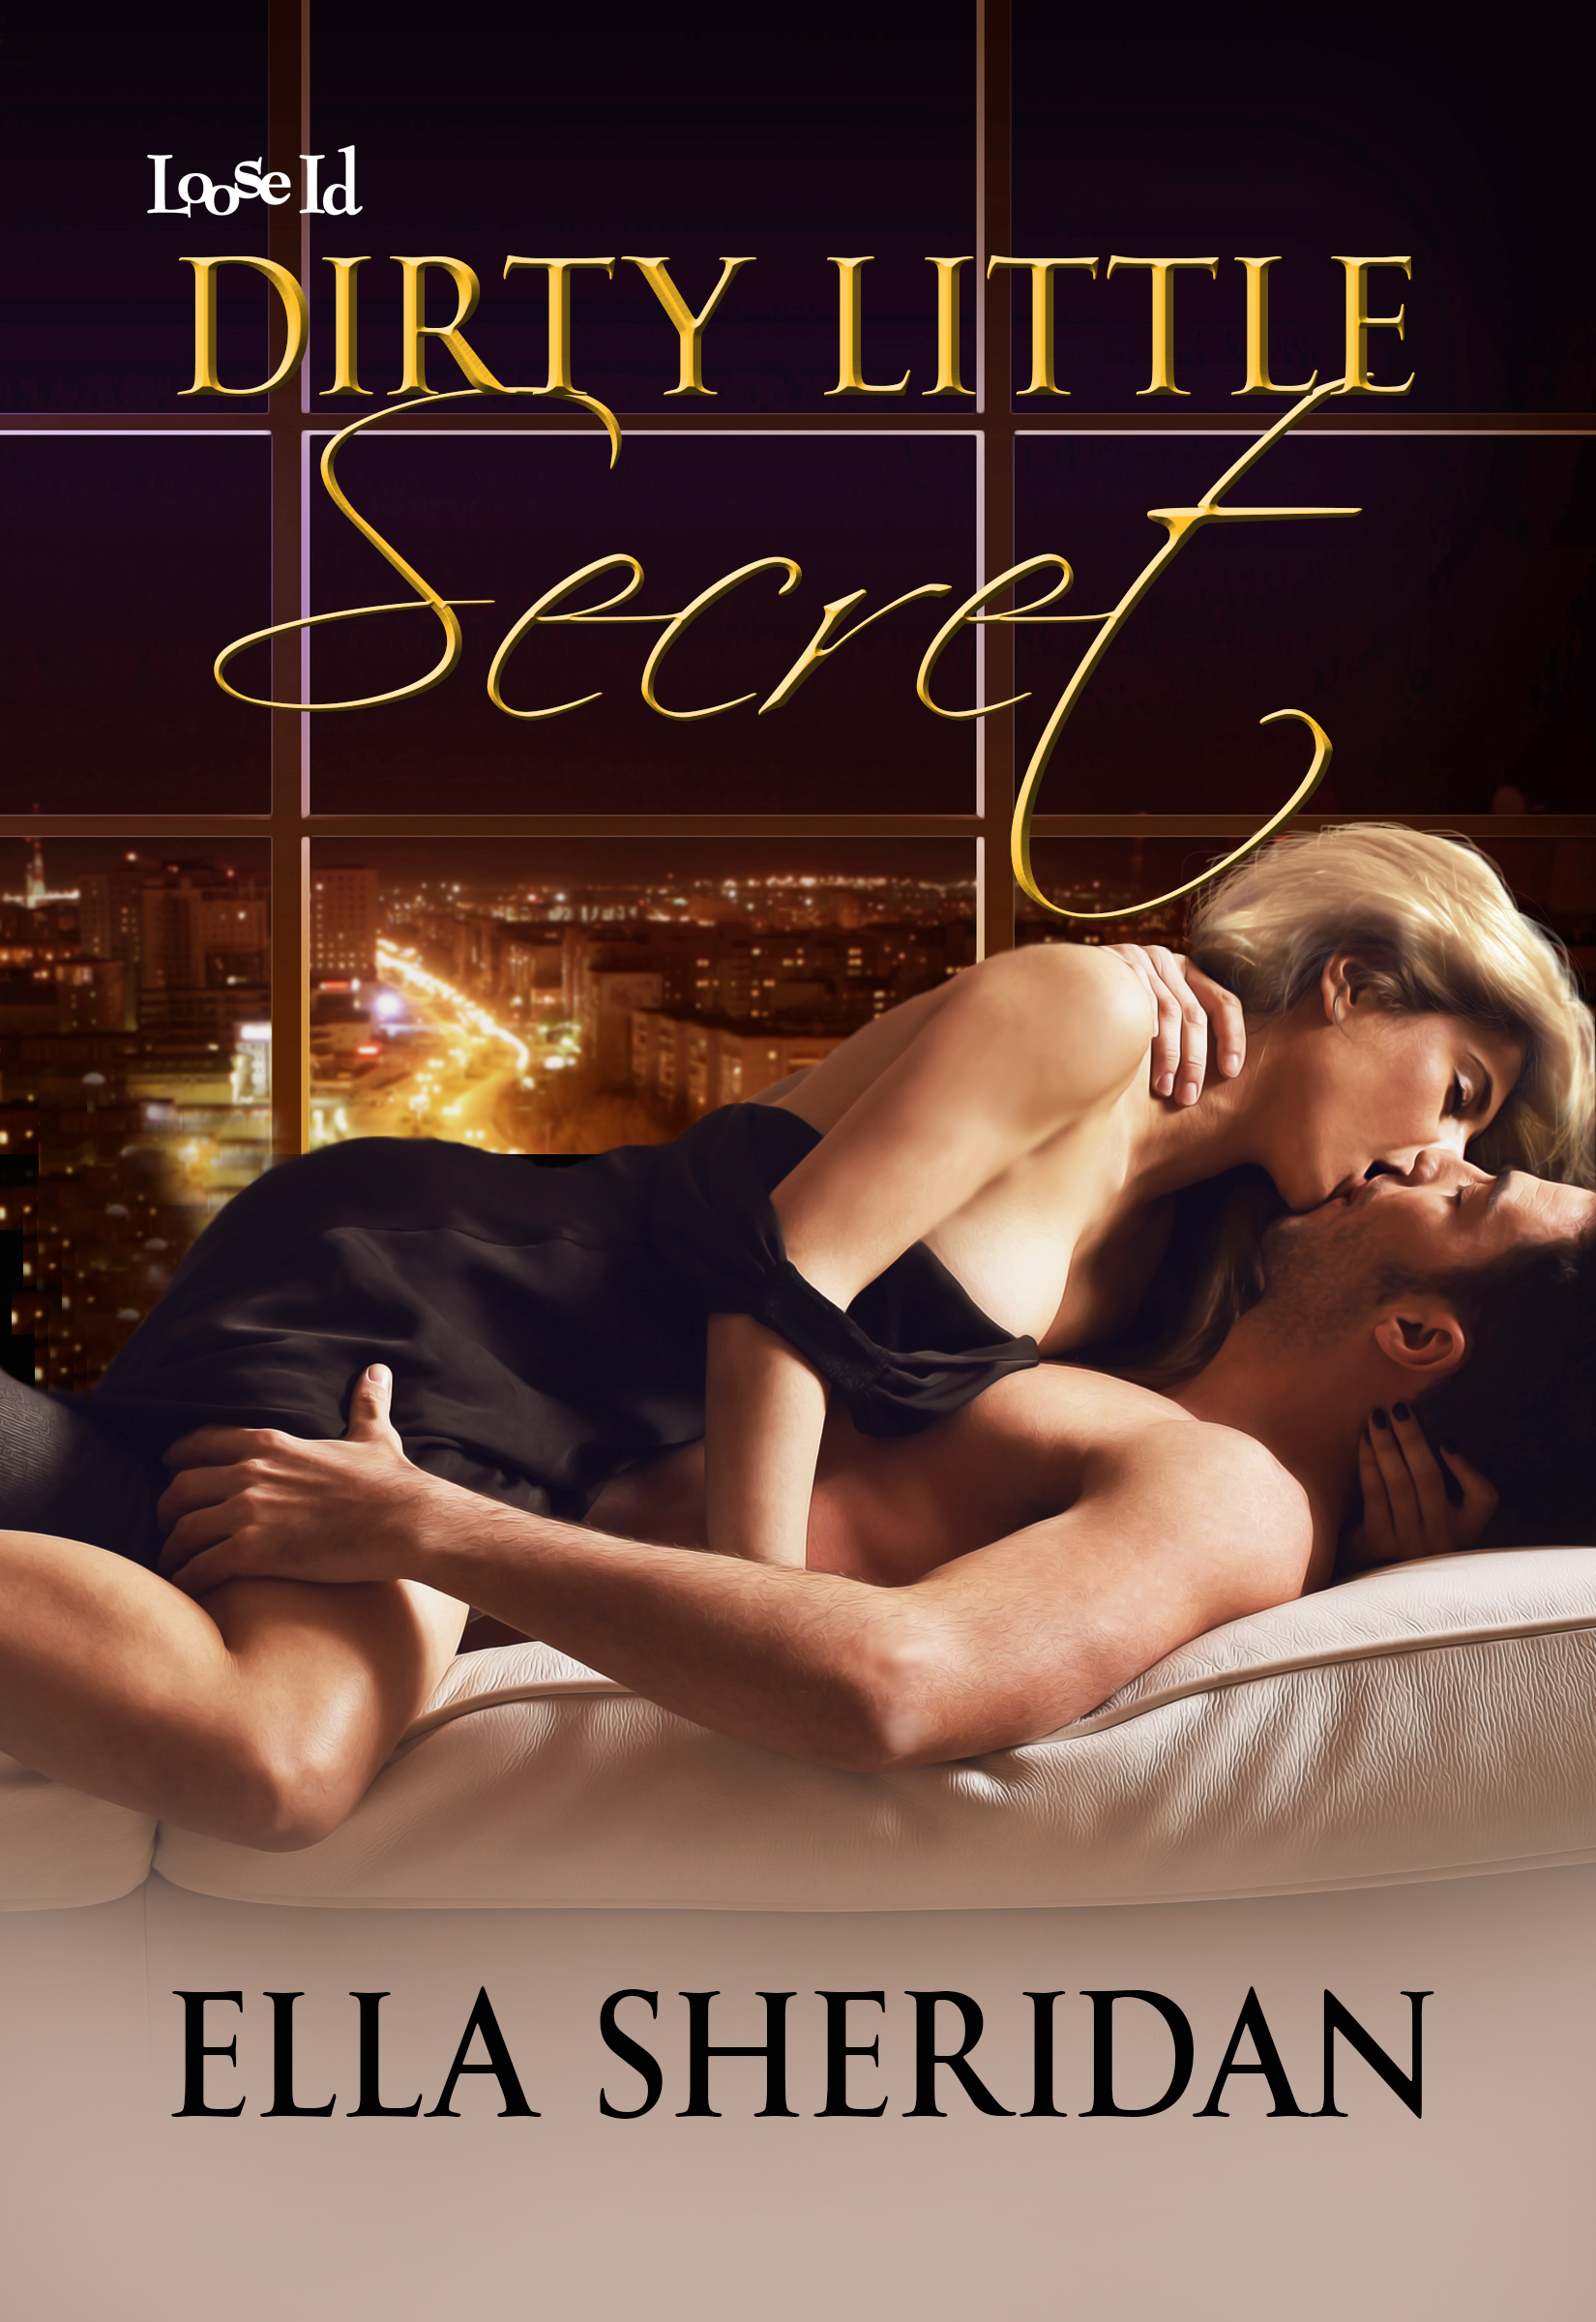 Ella Sheridan, Dirty Little Secret, Loose Id, erotic romance